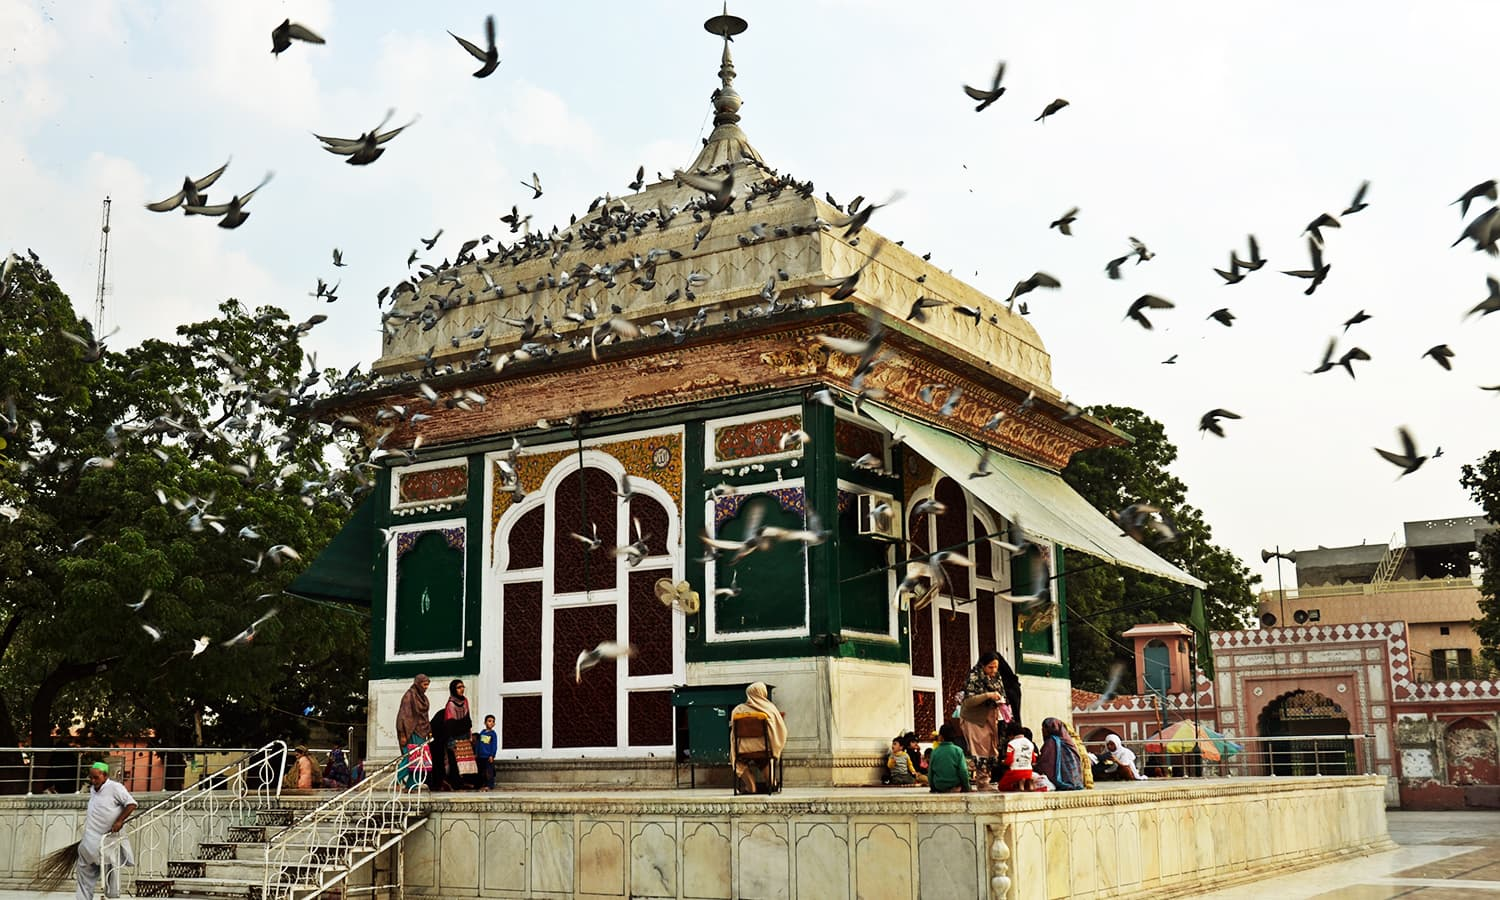 Pigeons are attracted to the serenity of shrine. —Photo by Abdullah Khan